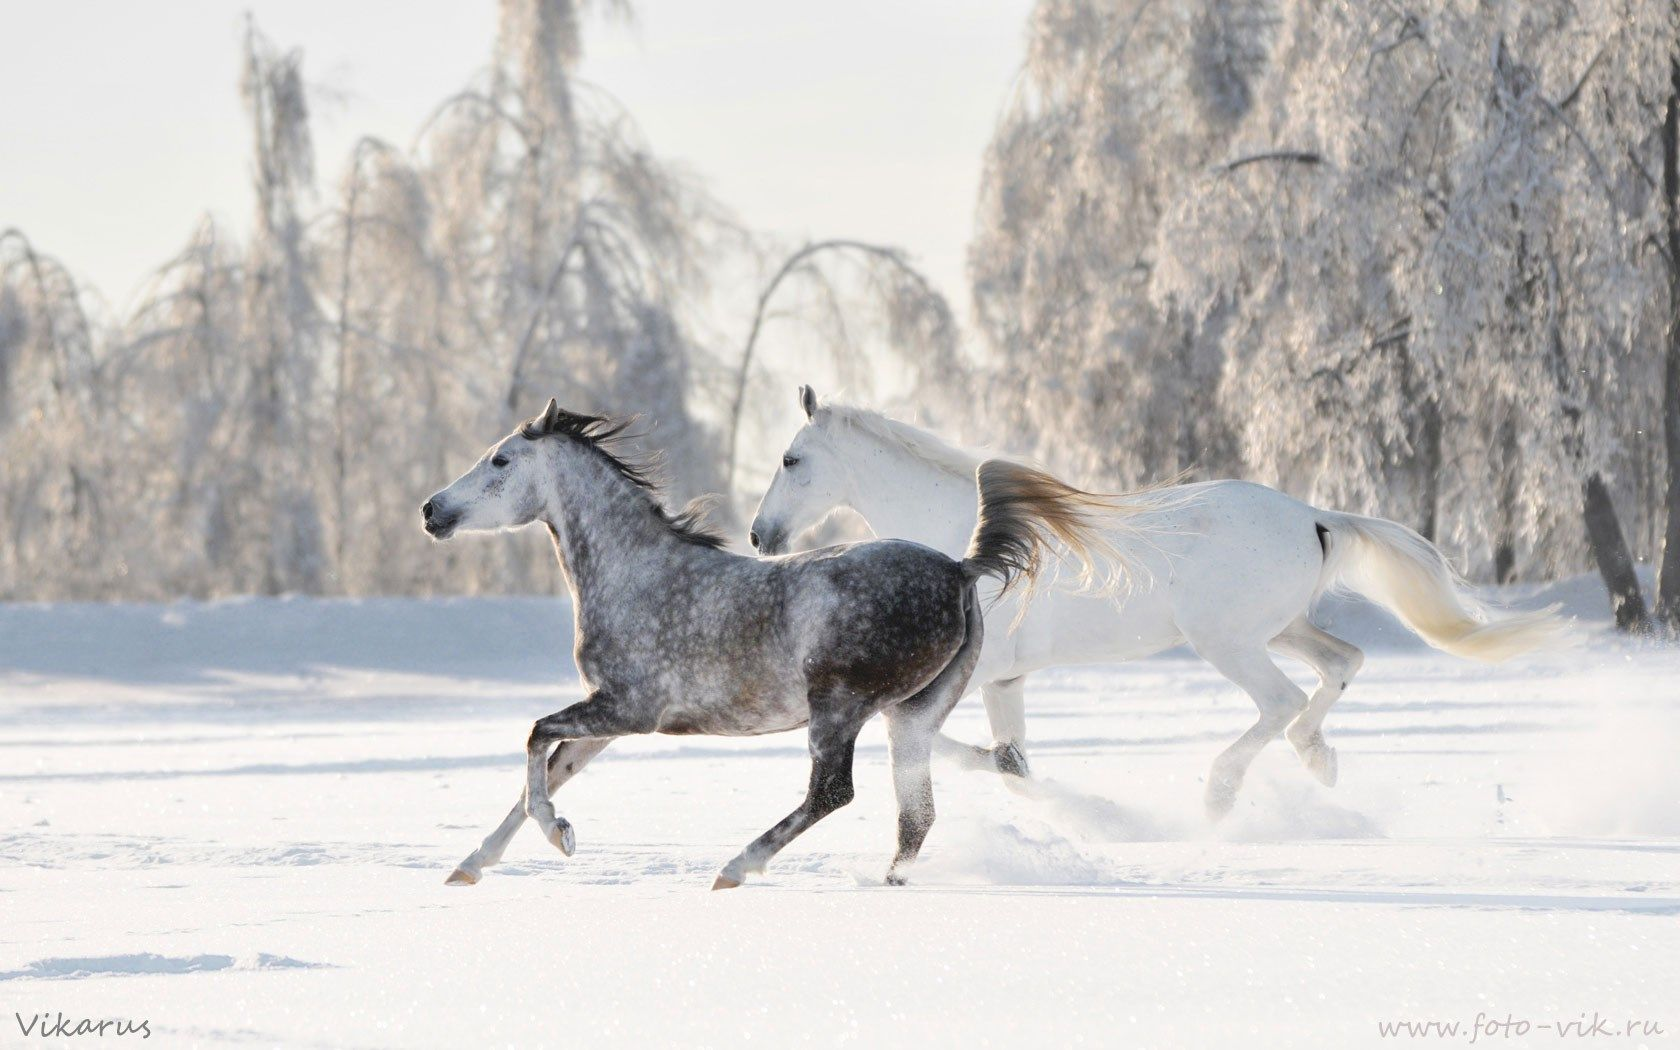 Top Wallpaper Horse Winter - 8ab4950b88f470795eef891c85b127cc  Graphic_394274.jpg